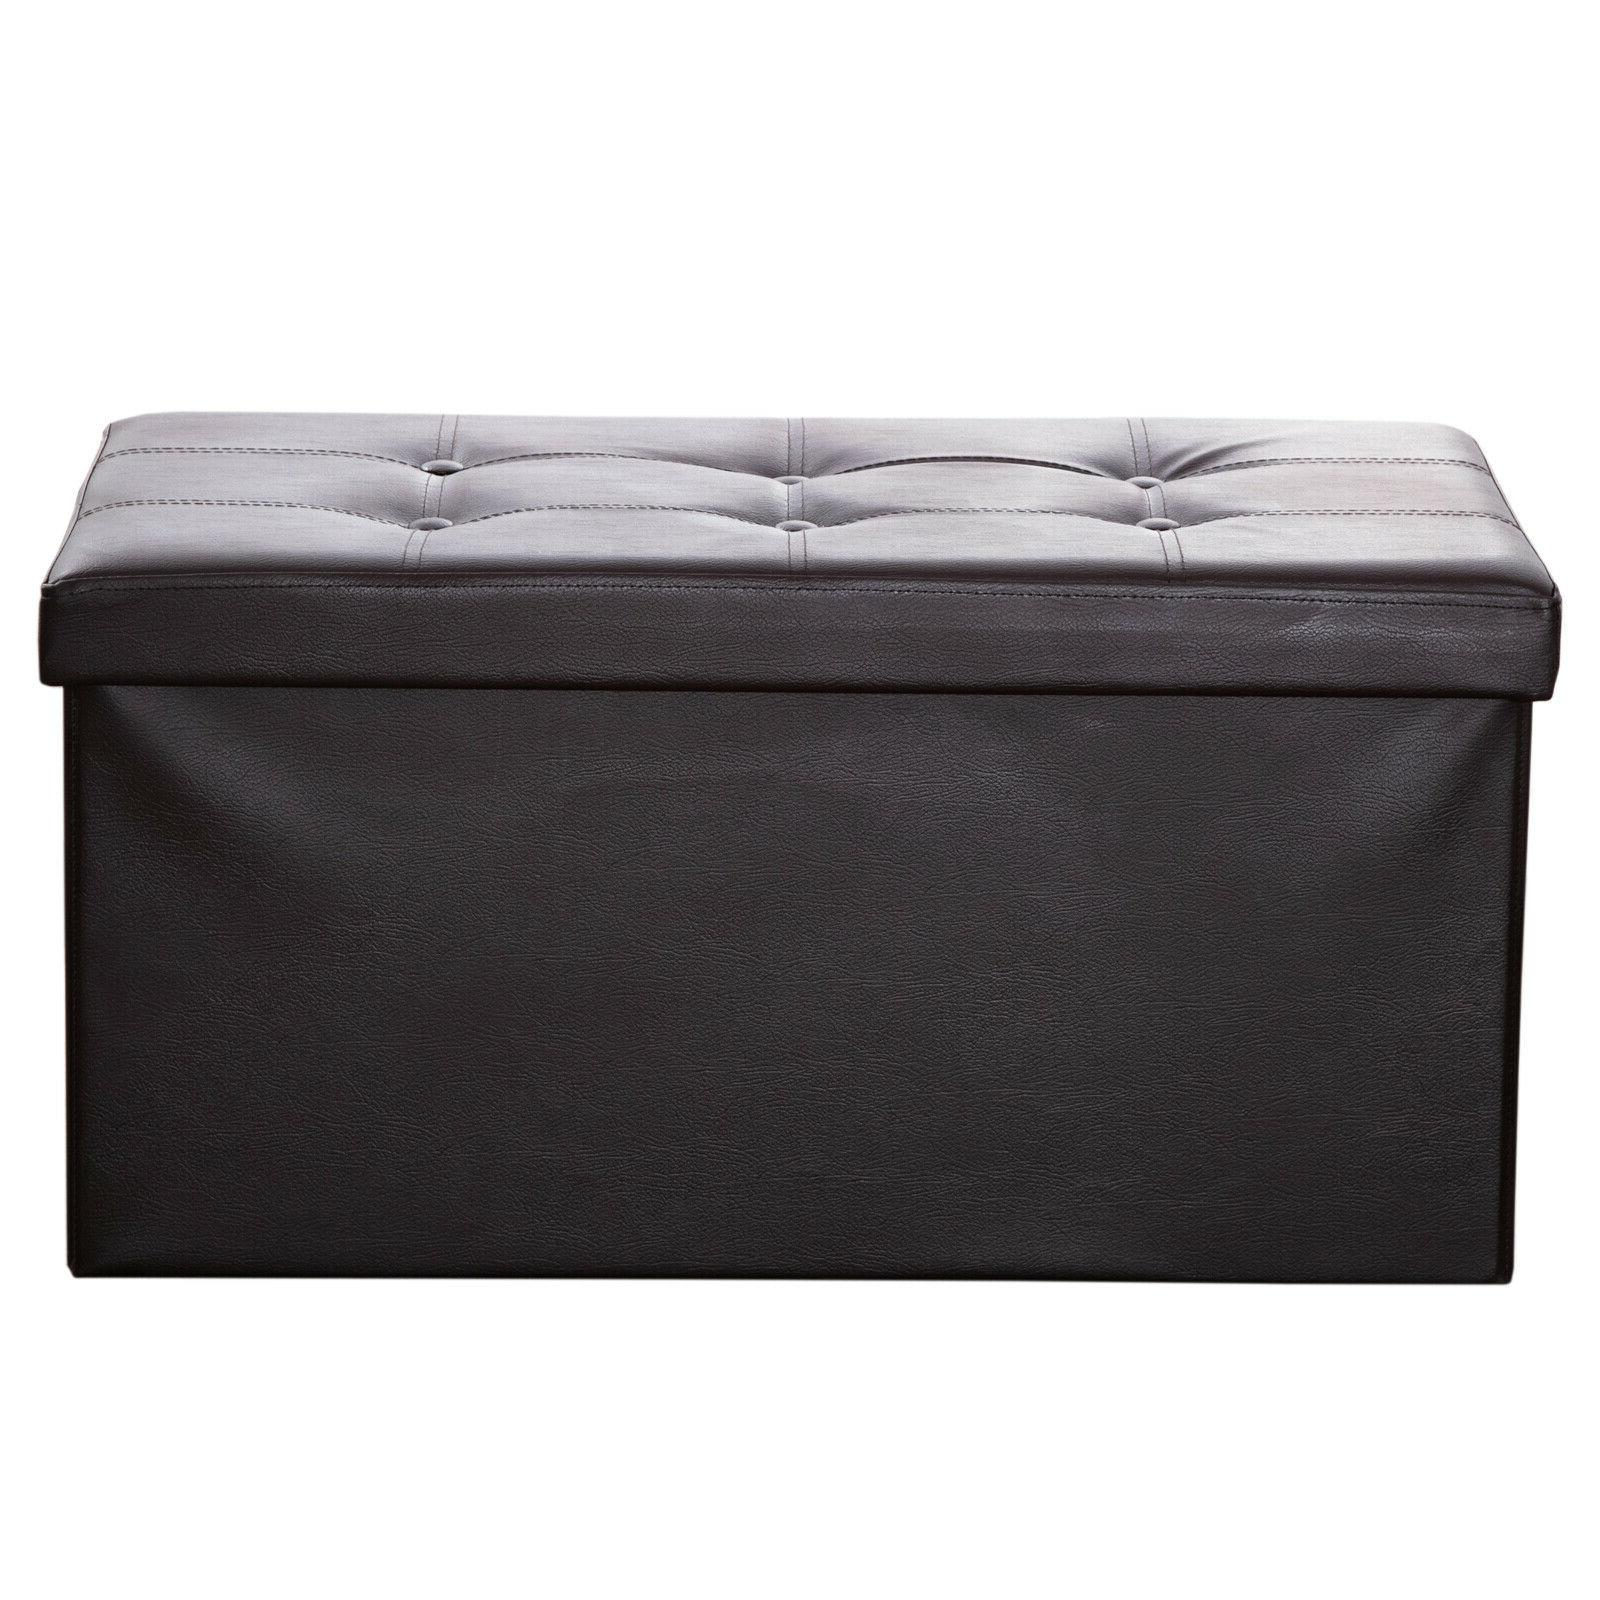 Faux Leather Storage Bench Ottoman Chest Folding